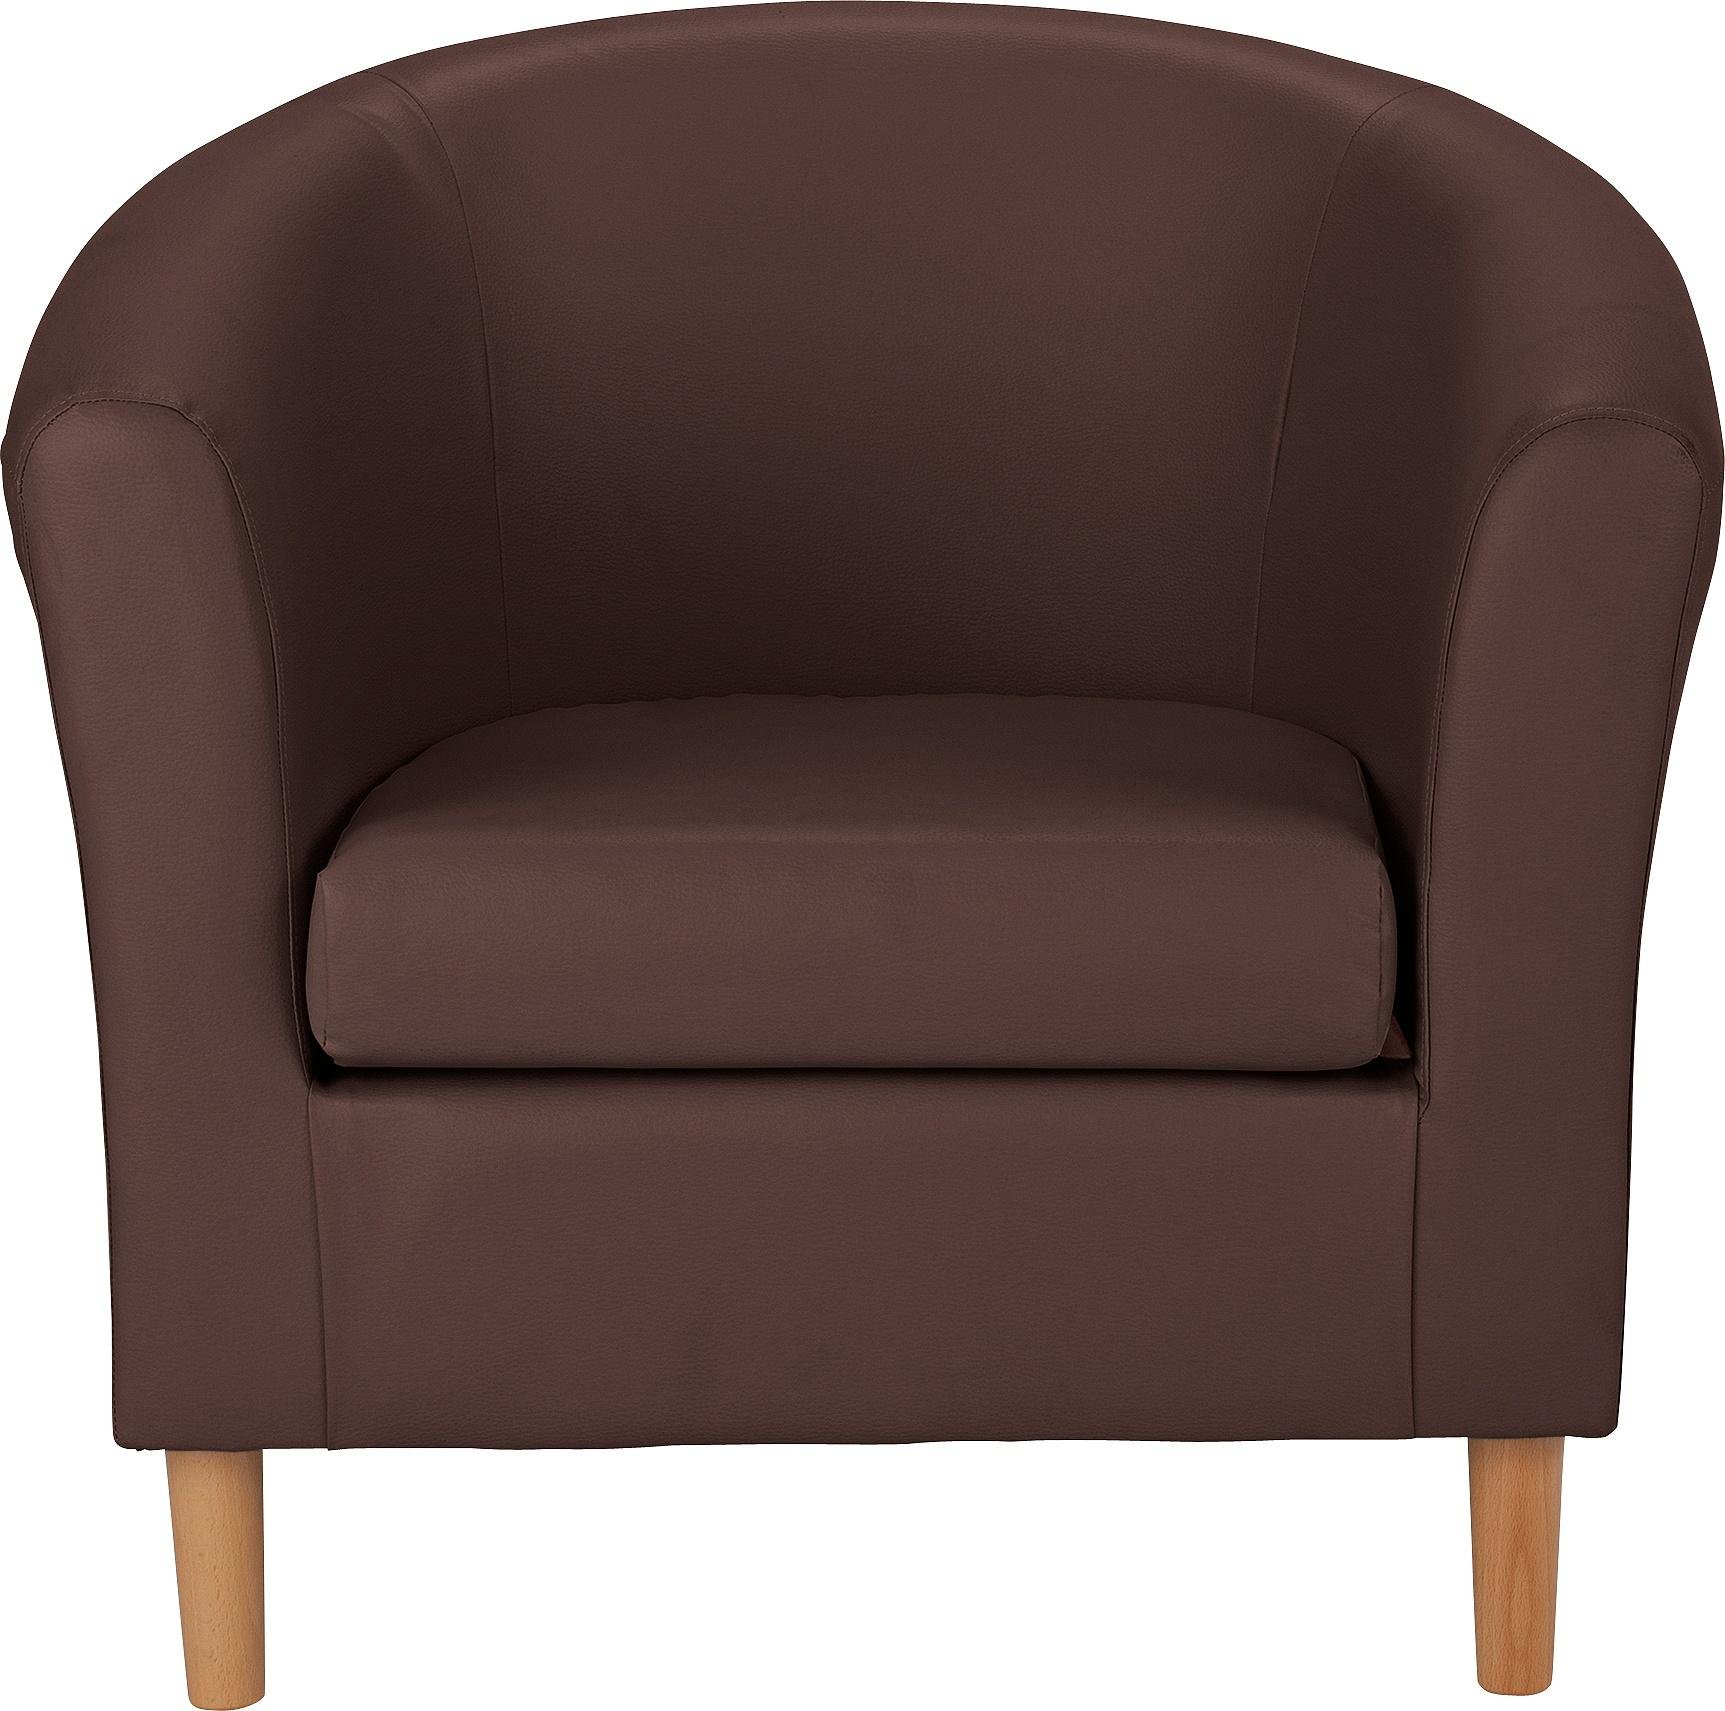 leather tub chair peacock fan results for chairs in home and garden living room argos faux brown